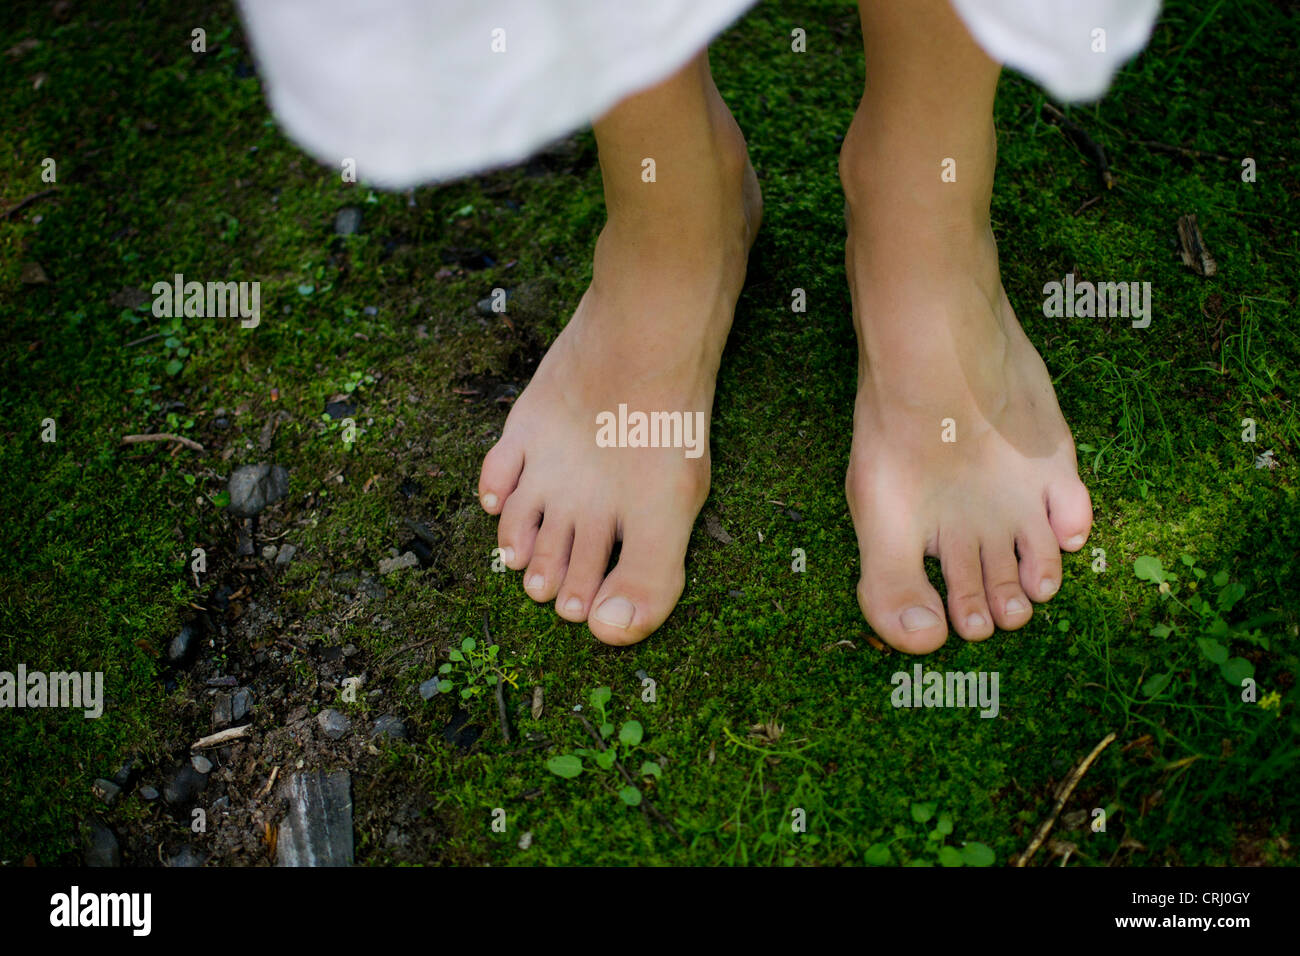 Delightful young girl model feet commit